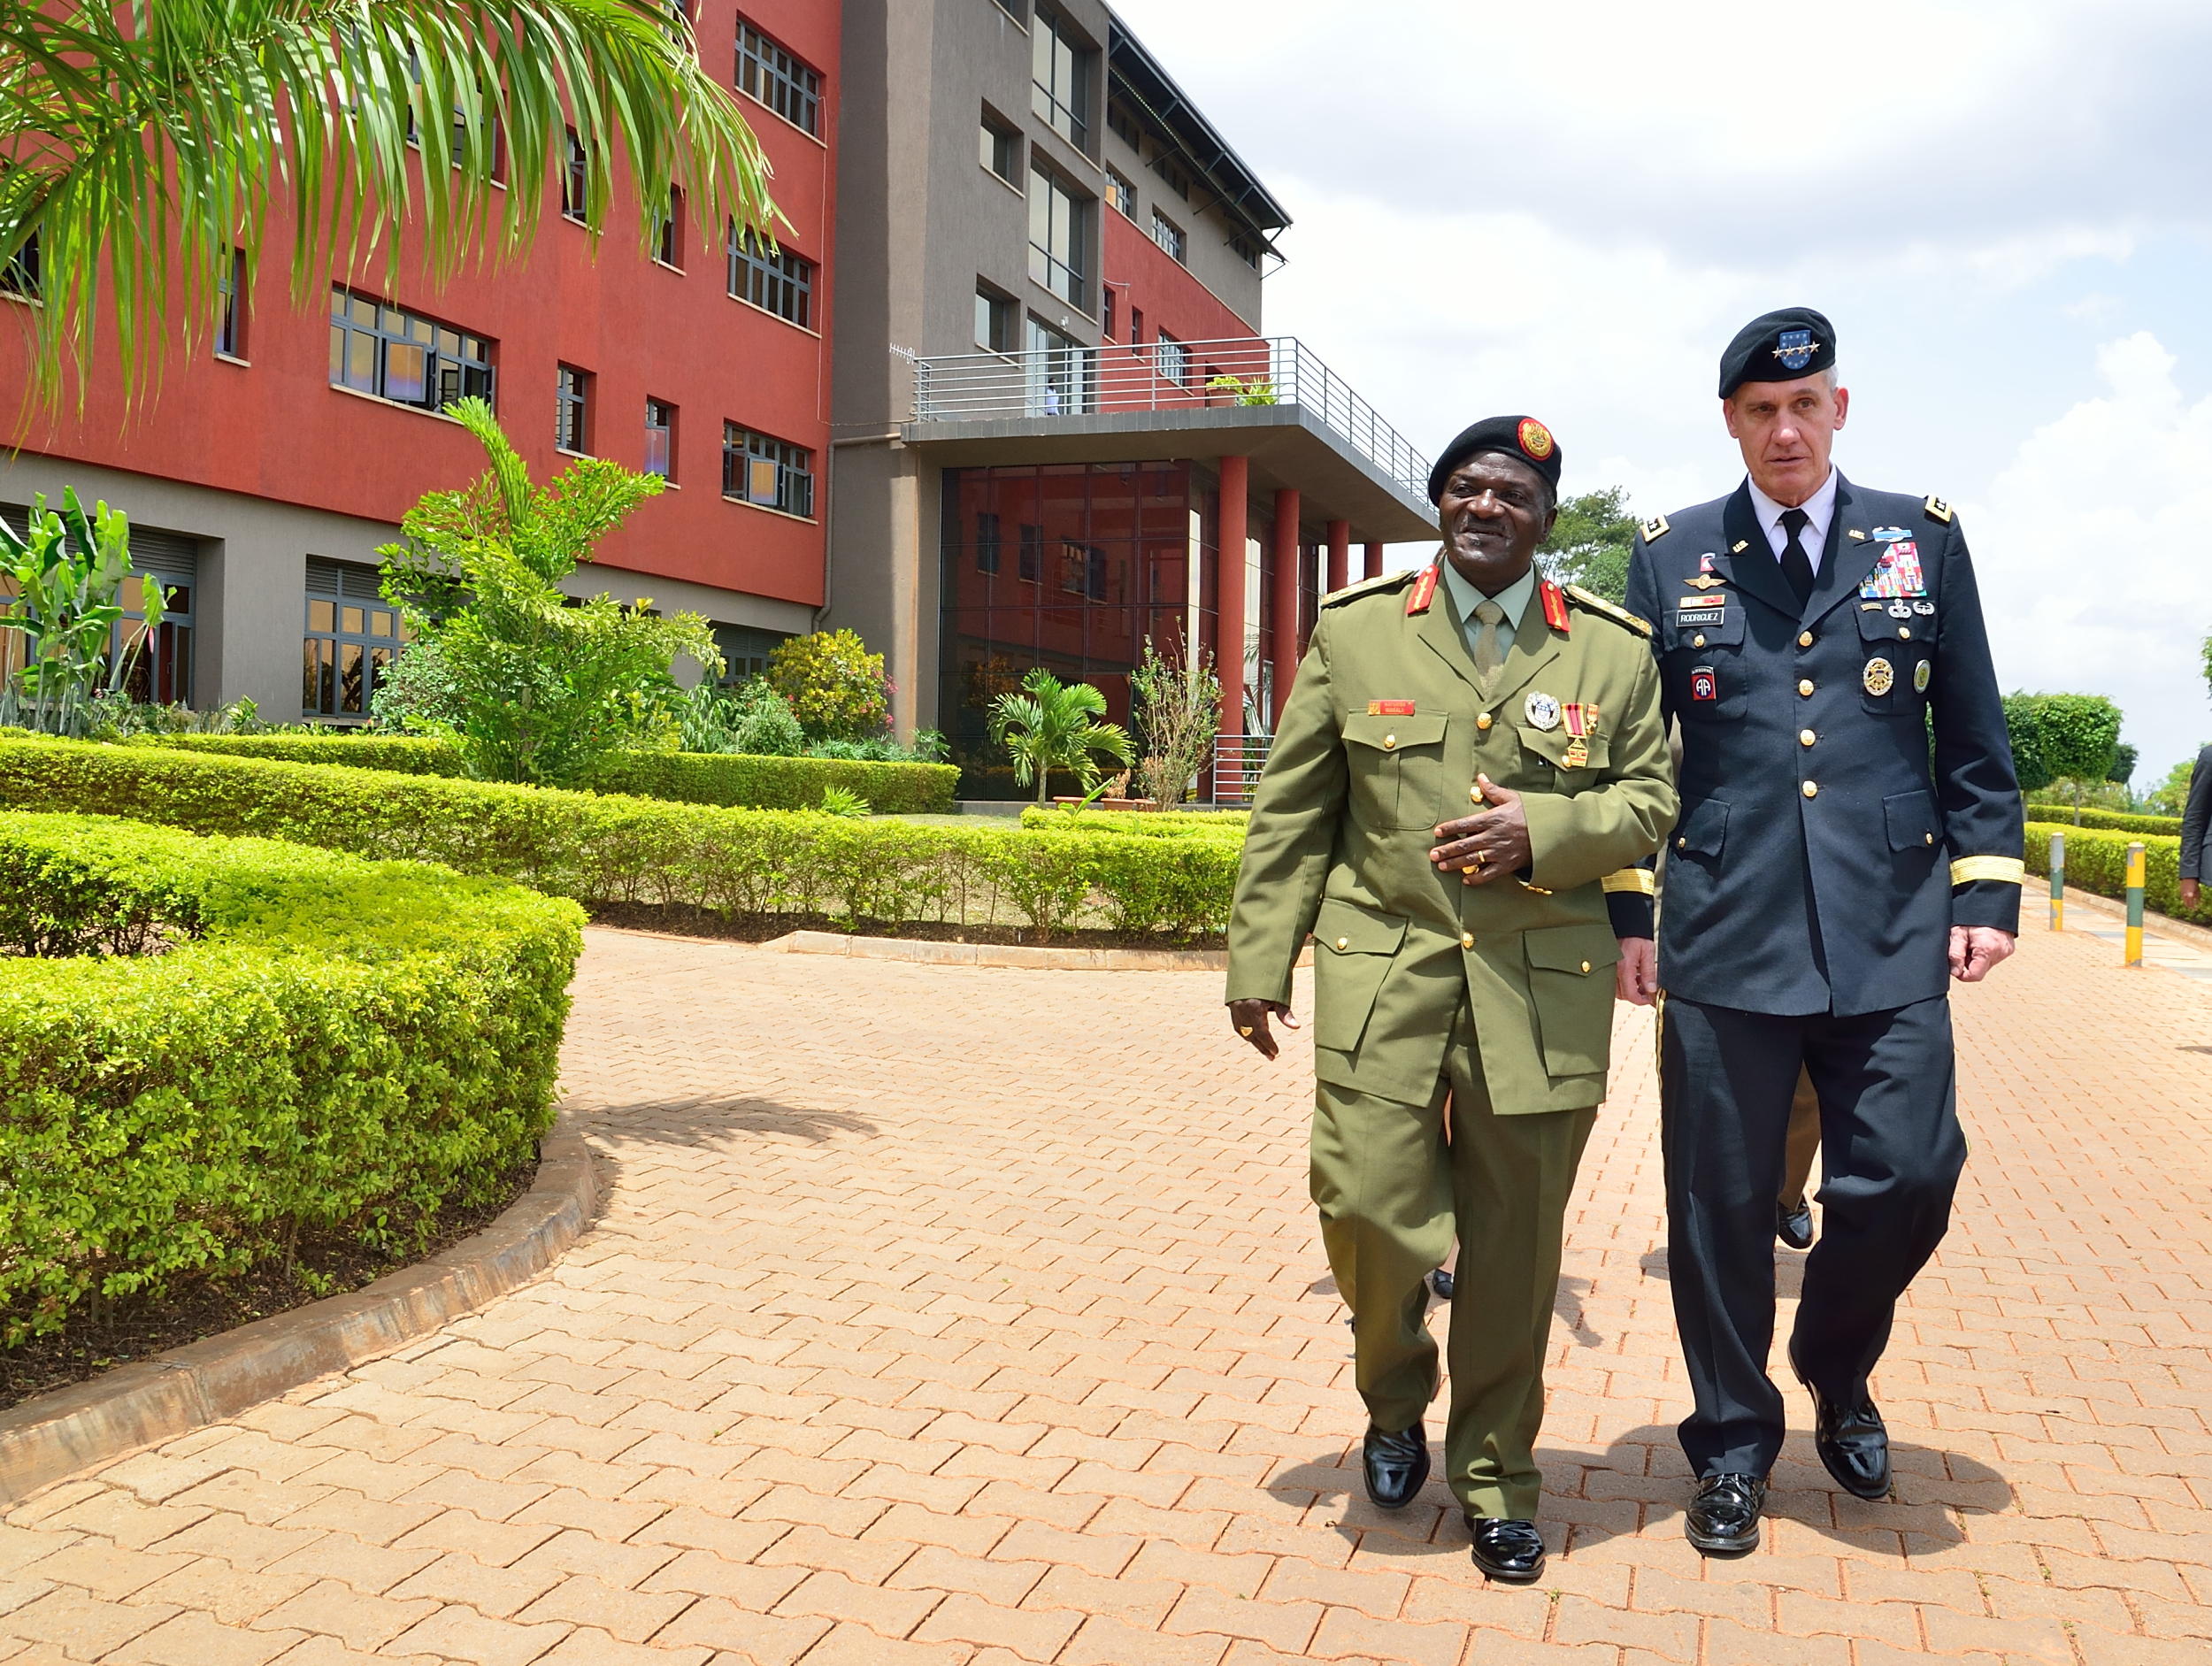 U.S. Army Gen. David M. Rodriguez, the commander of U.S. Africa Command met Ugandan Chief of Defense Forces Katumba Wamala and other senior officials of the Uganda People's Defense Forces in Kampala Sept. 30, 2015. (Photo courtesy U.S. Embassy - Kampala)